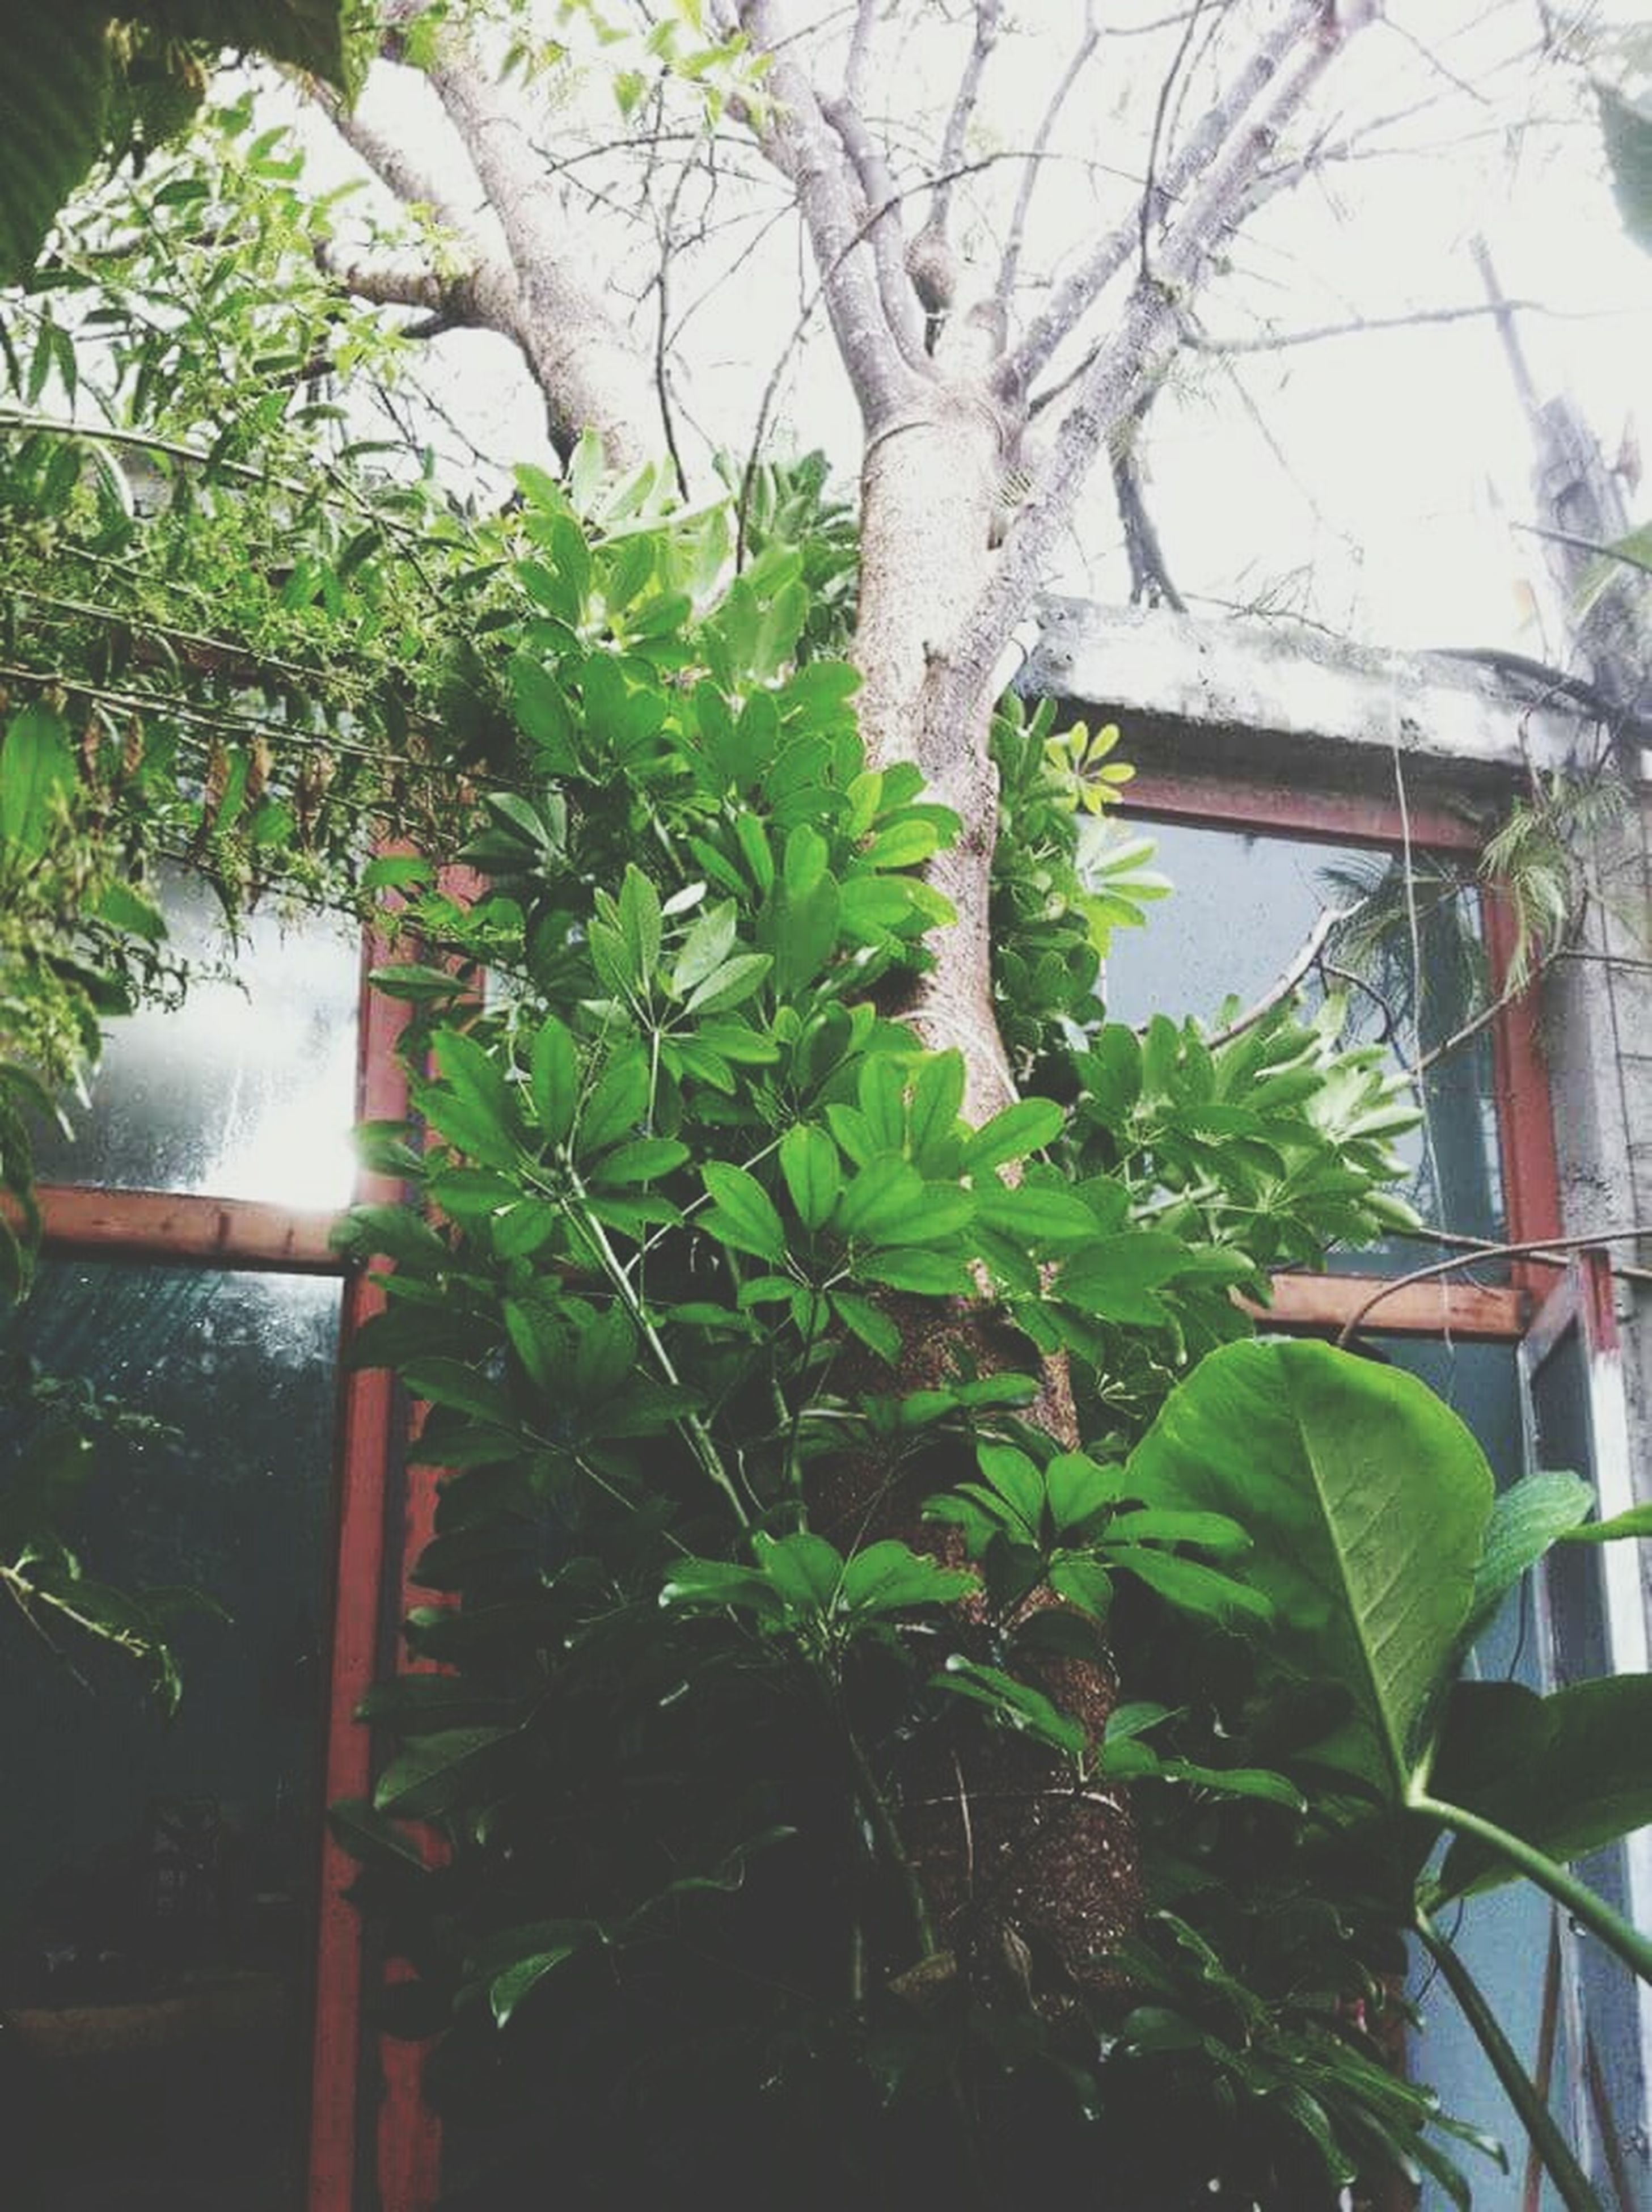 growth, tree, leaf, branch, plant, green color, built structure, nature, building exterior, architecture, growing, day, ivy, house, tree trunk, no people, window, outdoors, front or back yard, sunlight